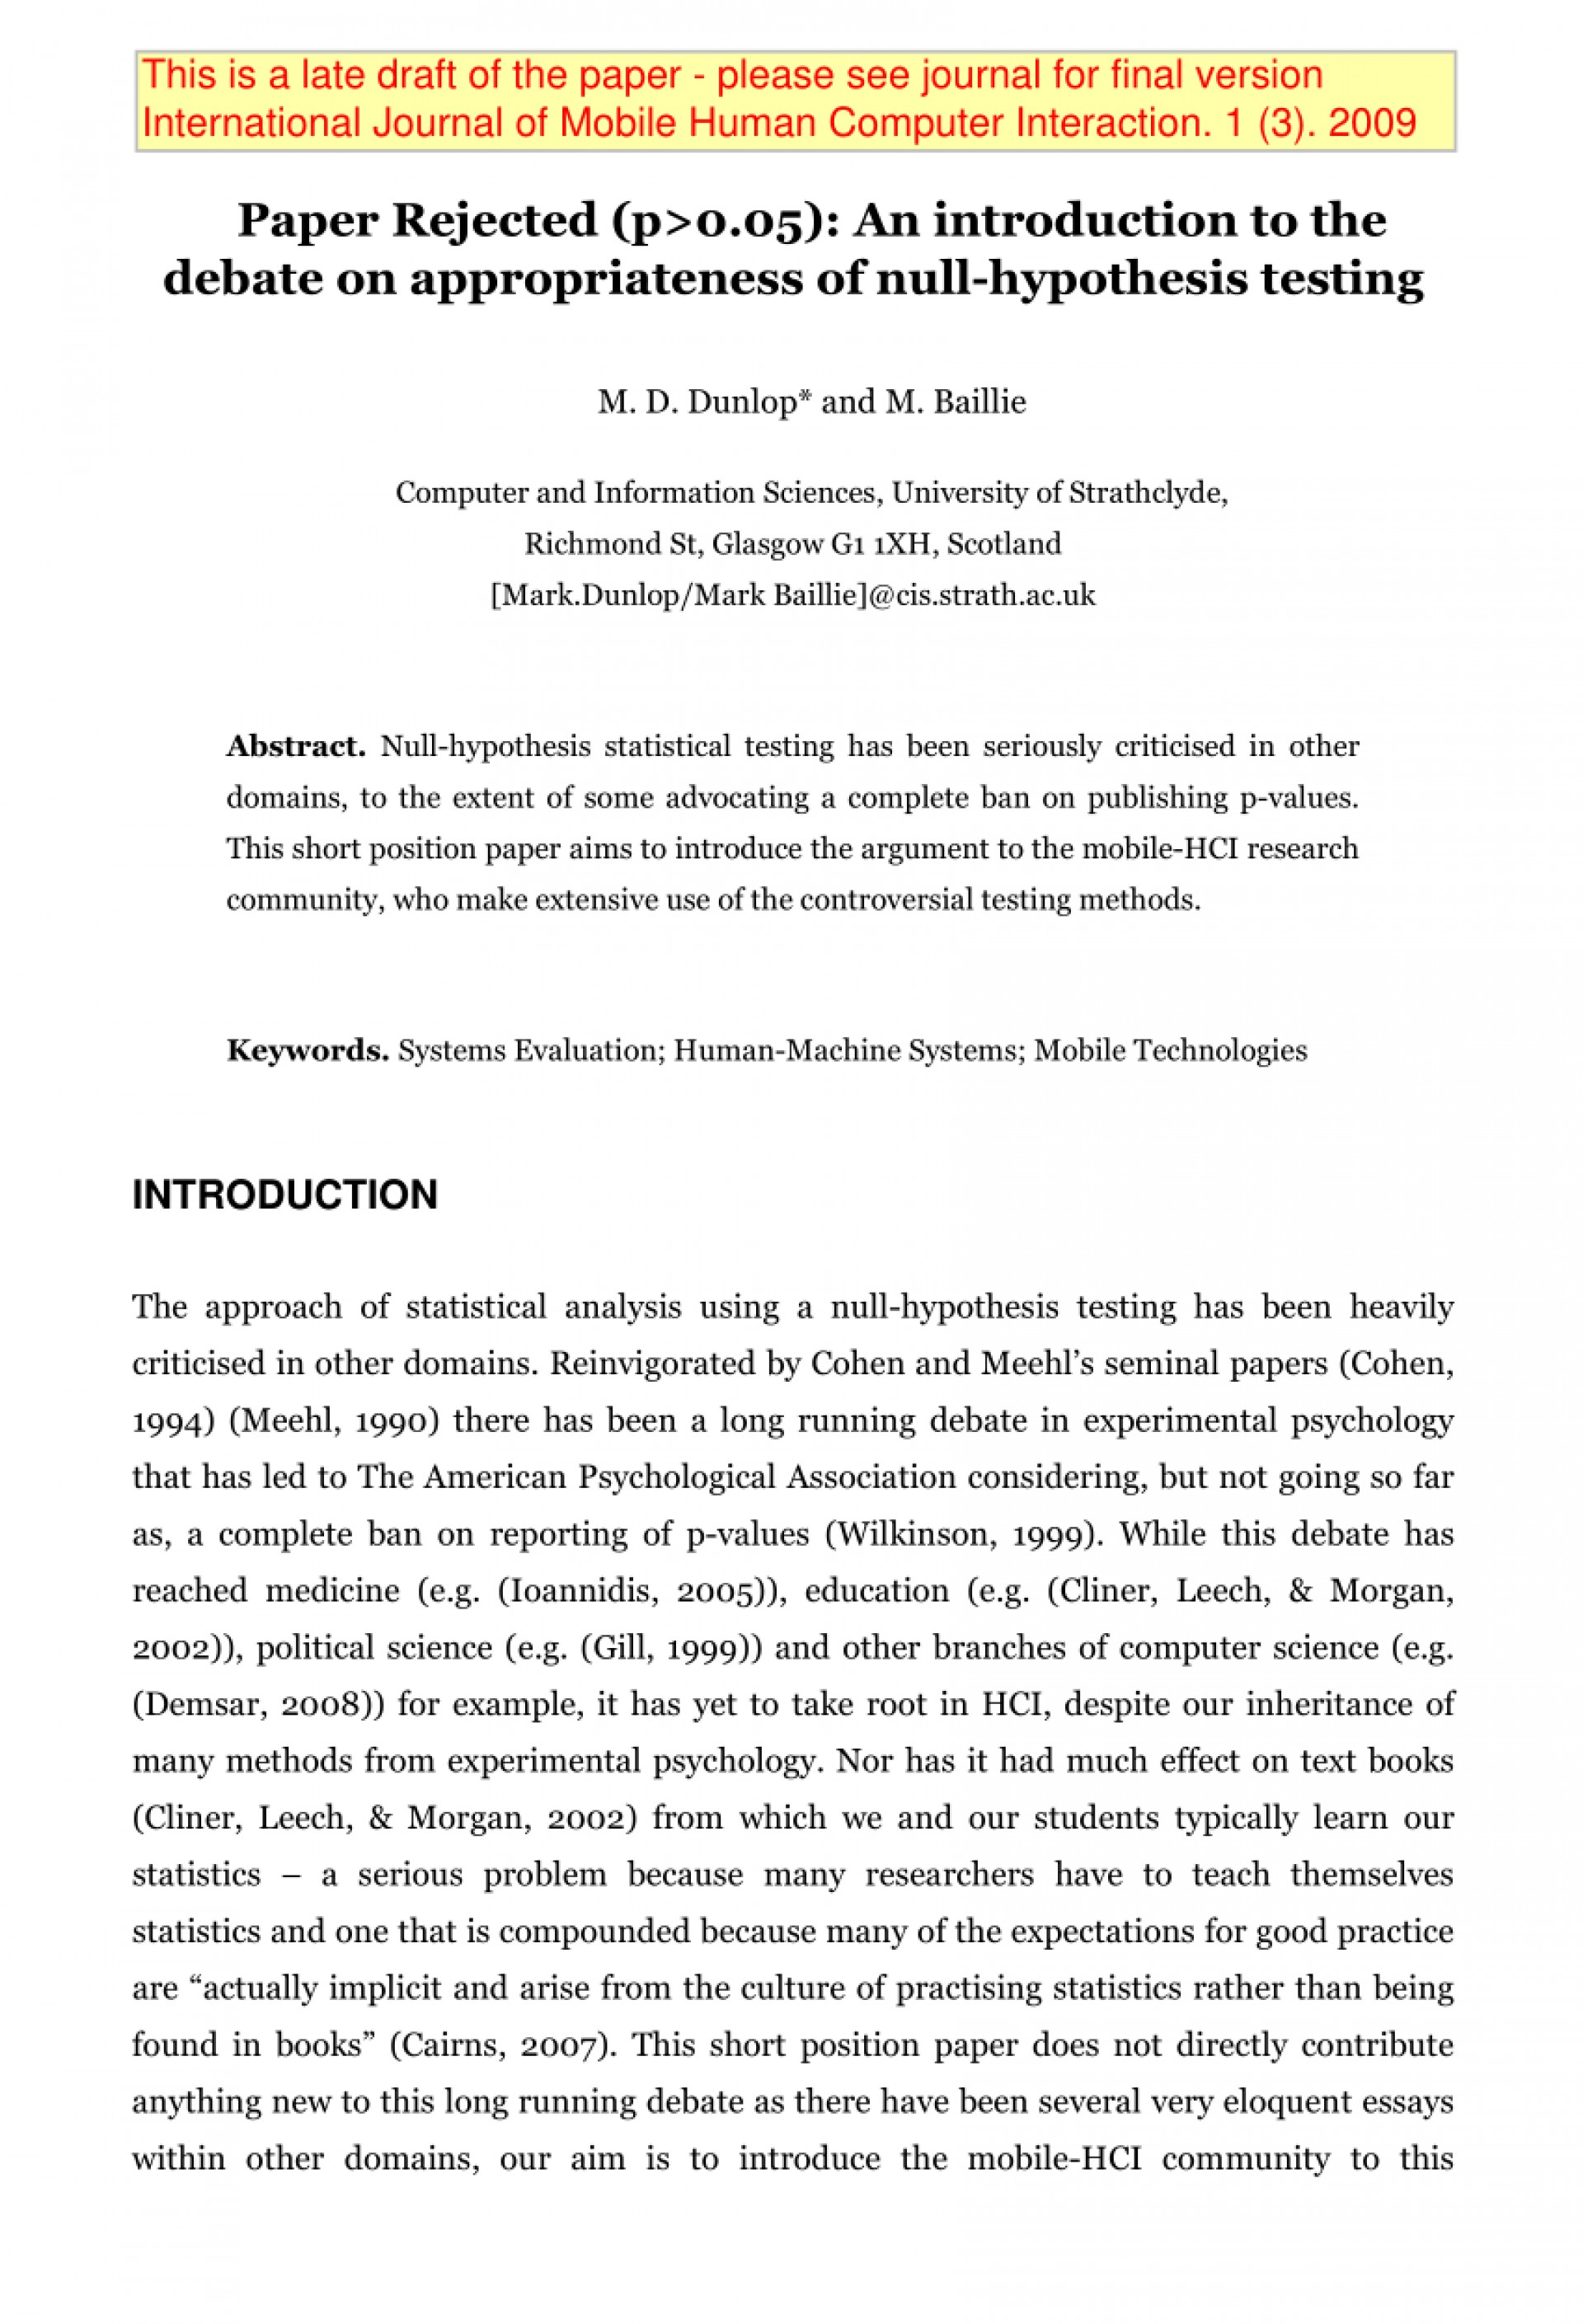 002 Research Paper Hypothesis Testing In Awesome Pdf 1920